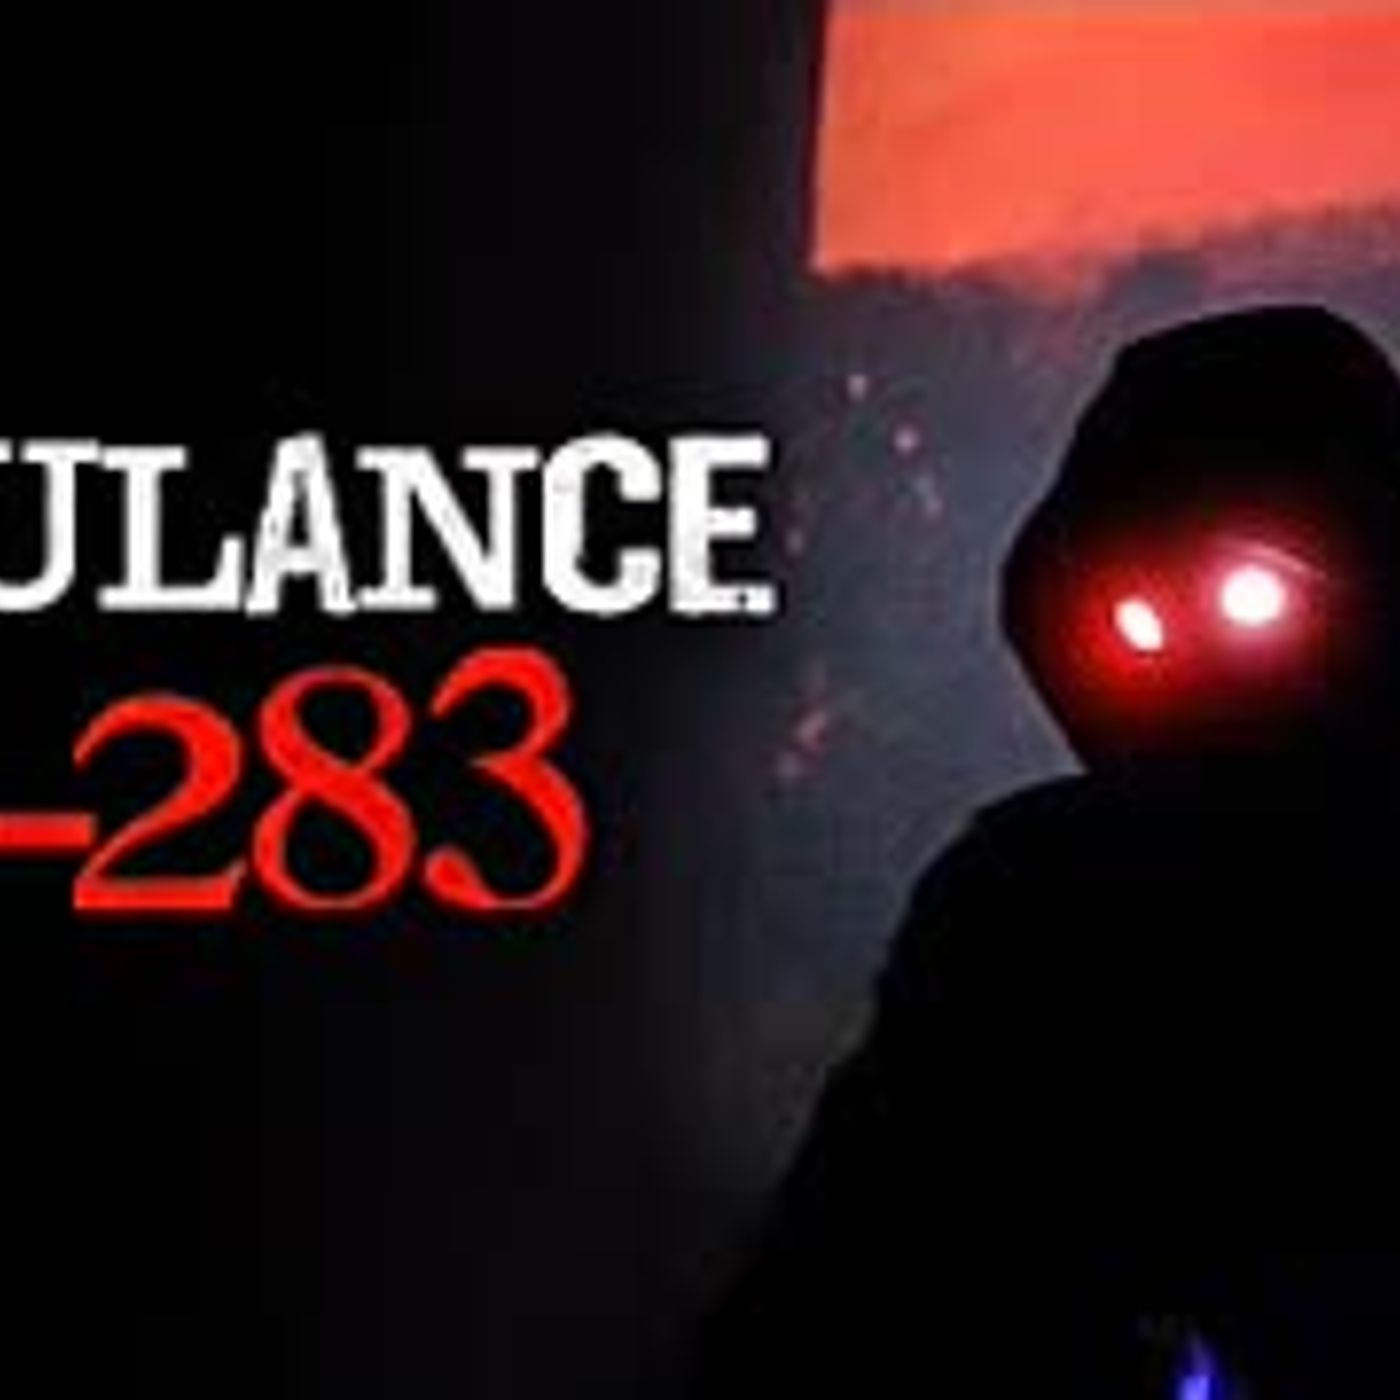 """Ambulance F-283"" Creepypasta"